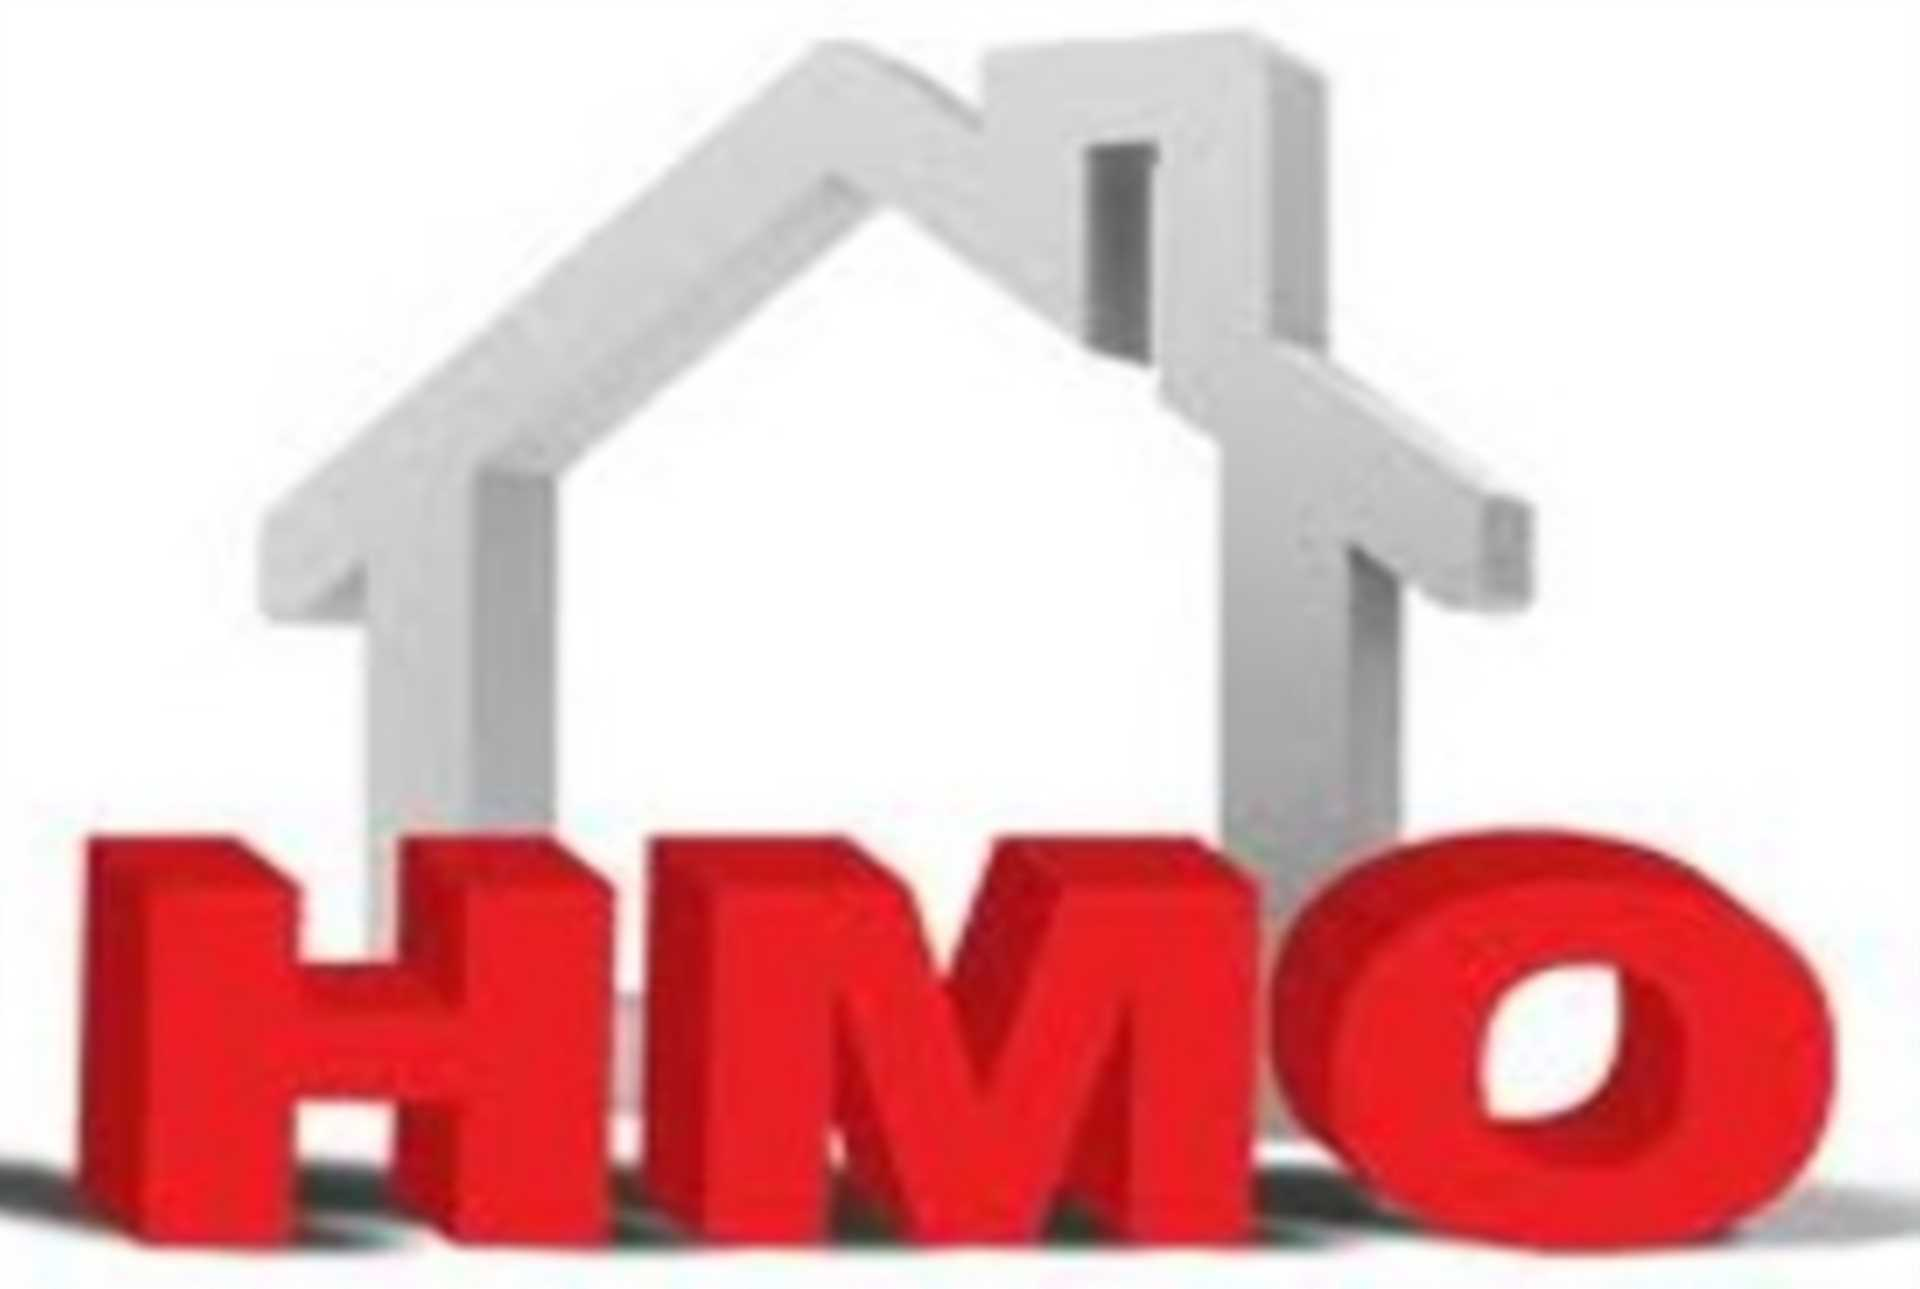 Are you aware of the new HMO Regulations?